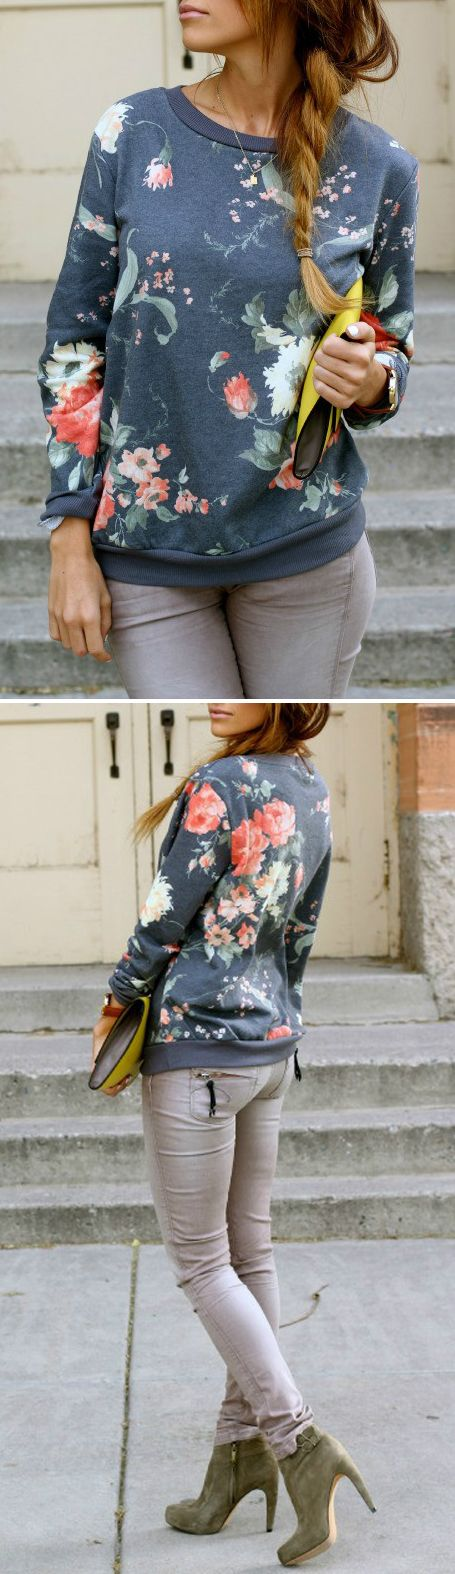 I love this floral print sweatshirt with grey jeans for a casual office or cool weather weekend look